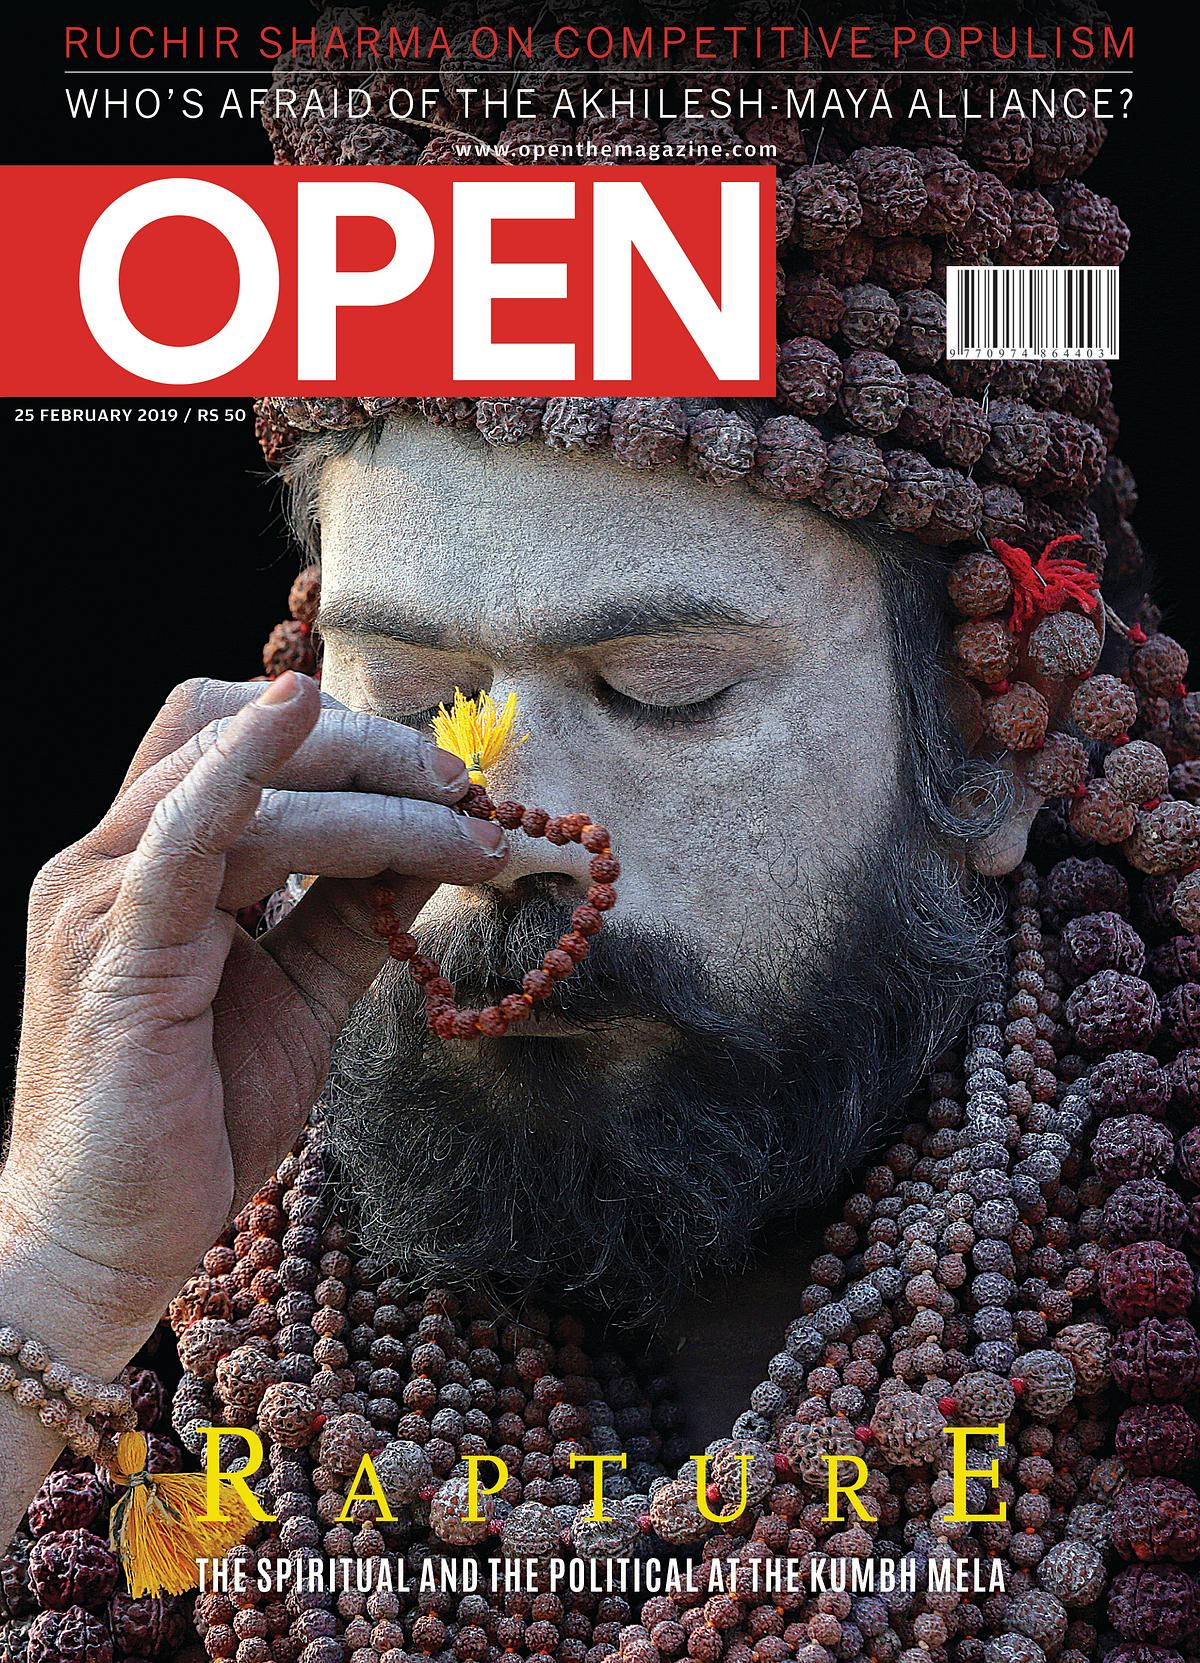 Open Cover's